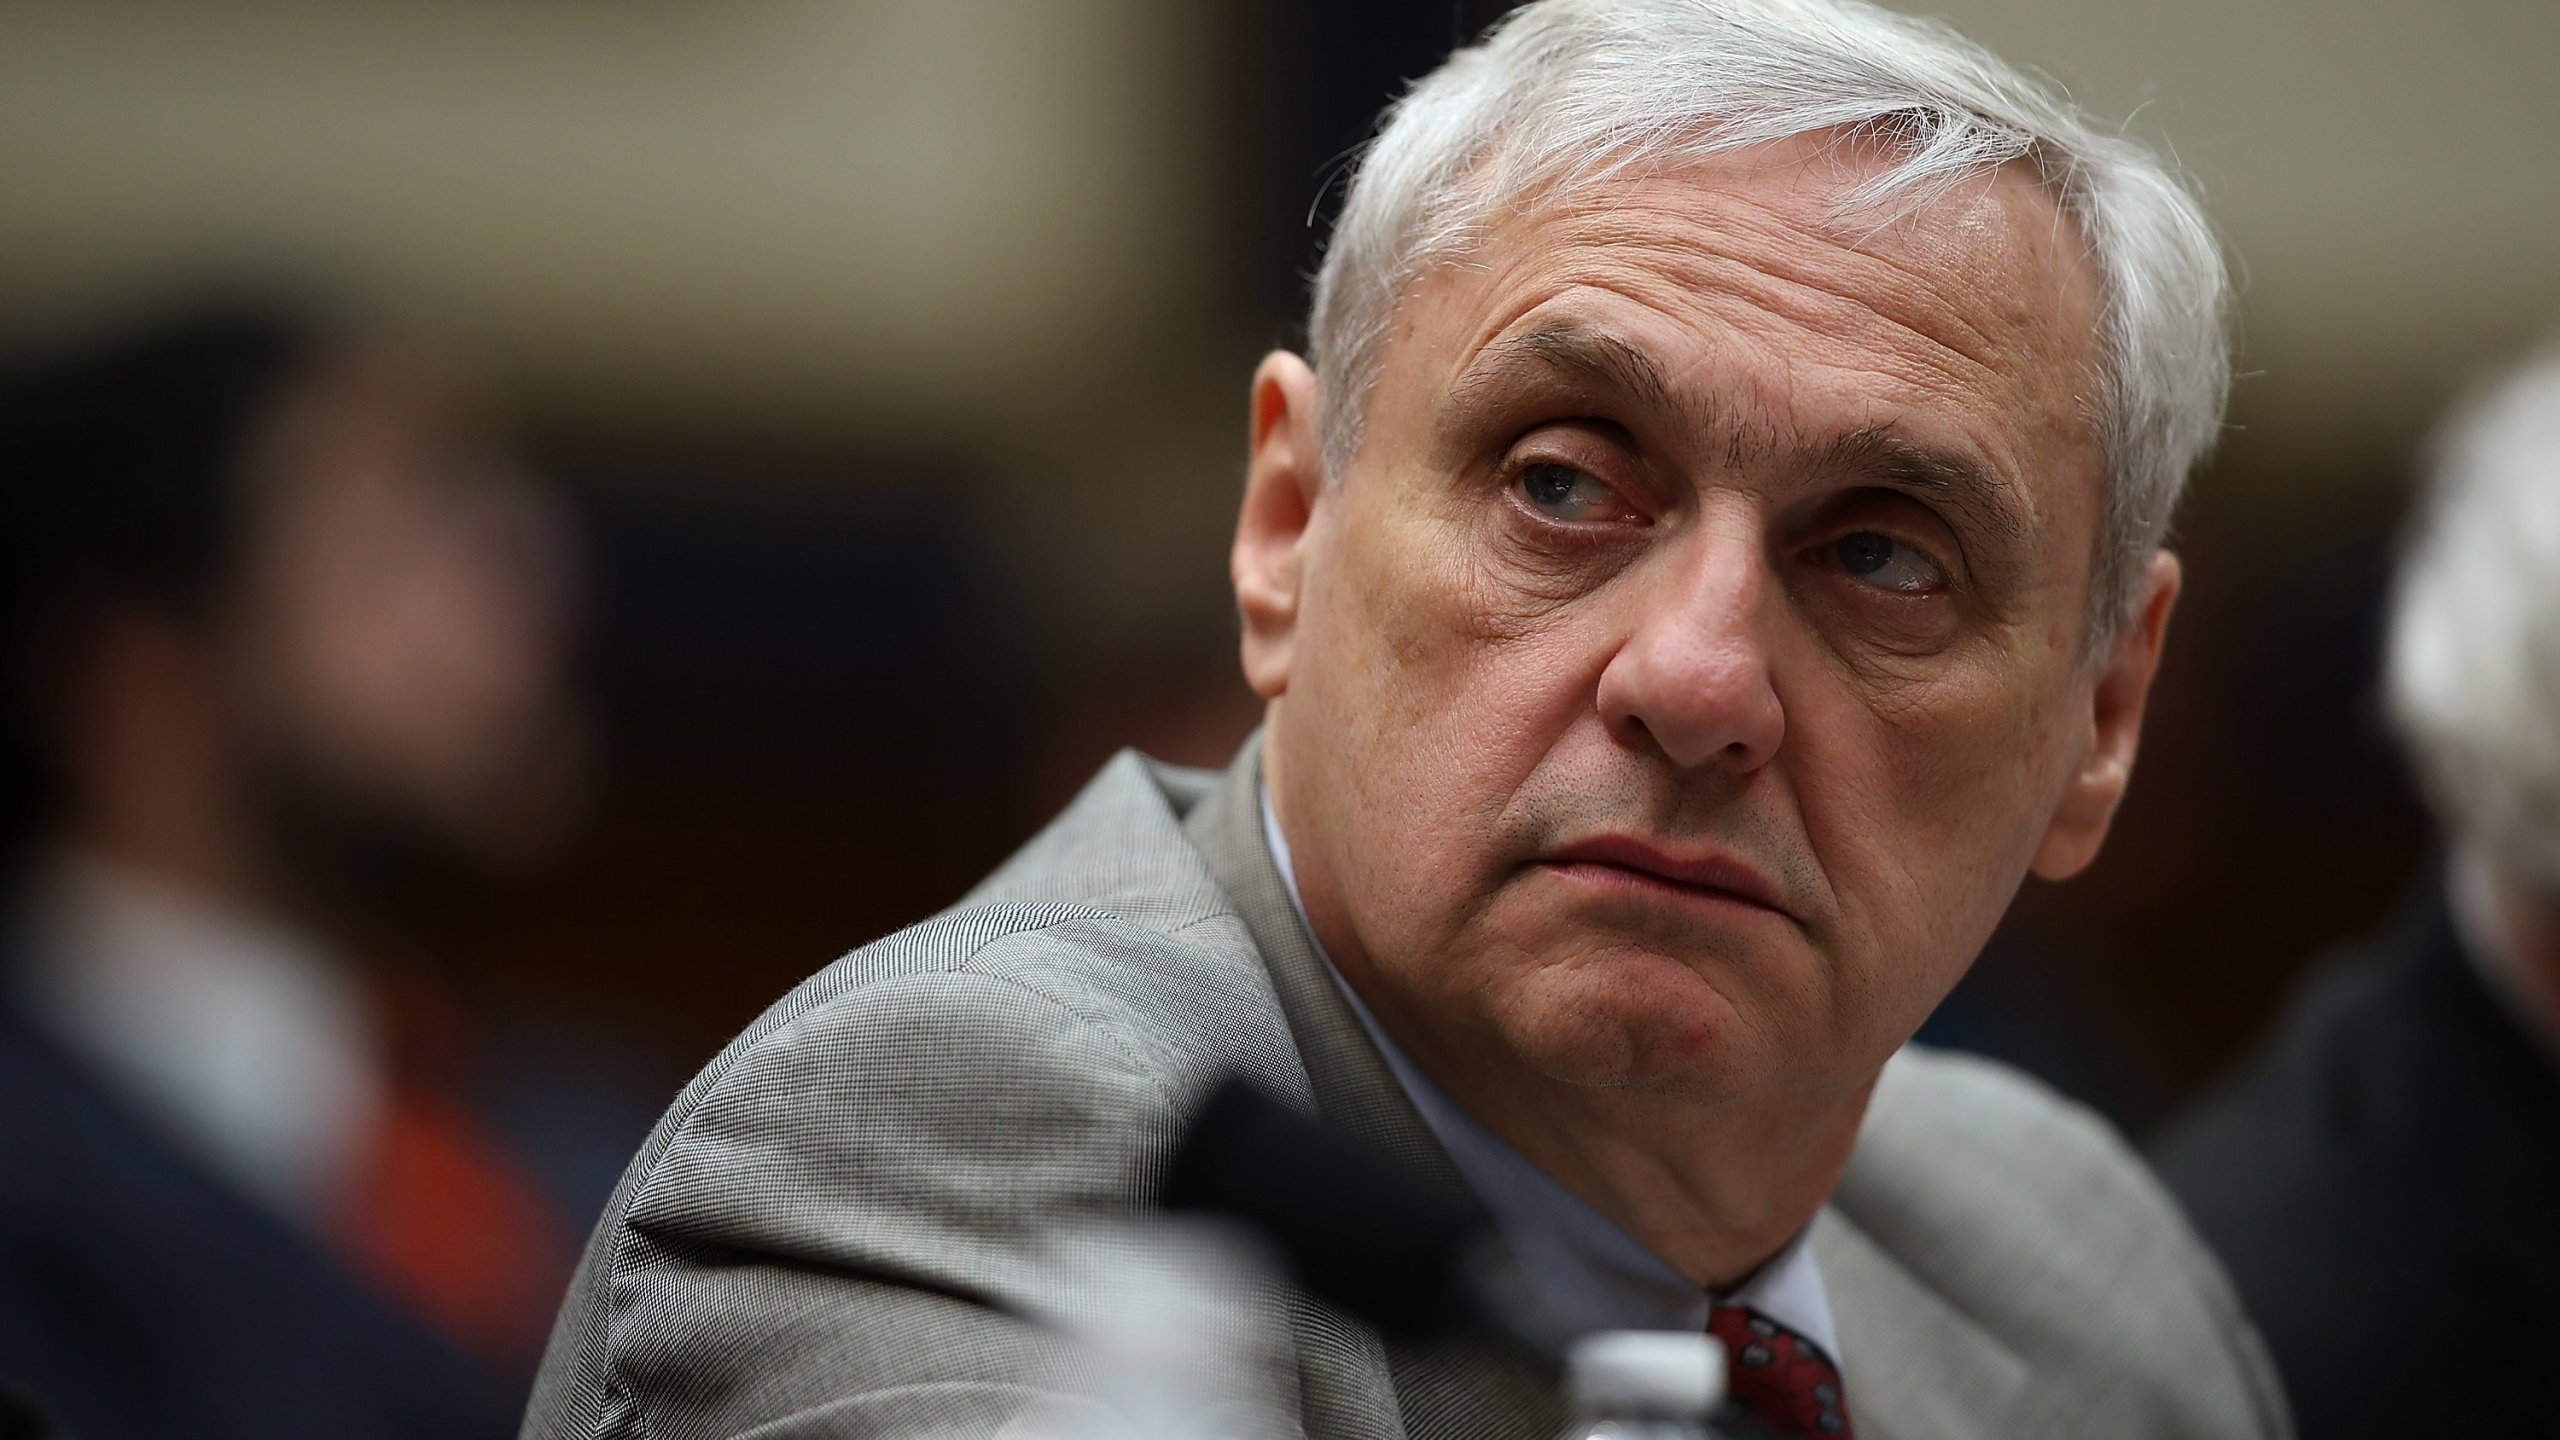 Ninth Circuit Appeals Court Judge Alex Kozinski looks on during a House Judiciary Committee hearing on March 16, 2017 in Washington, DC. (Credit: Justin Sullivan/Getty Images)